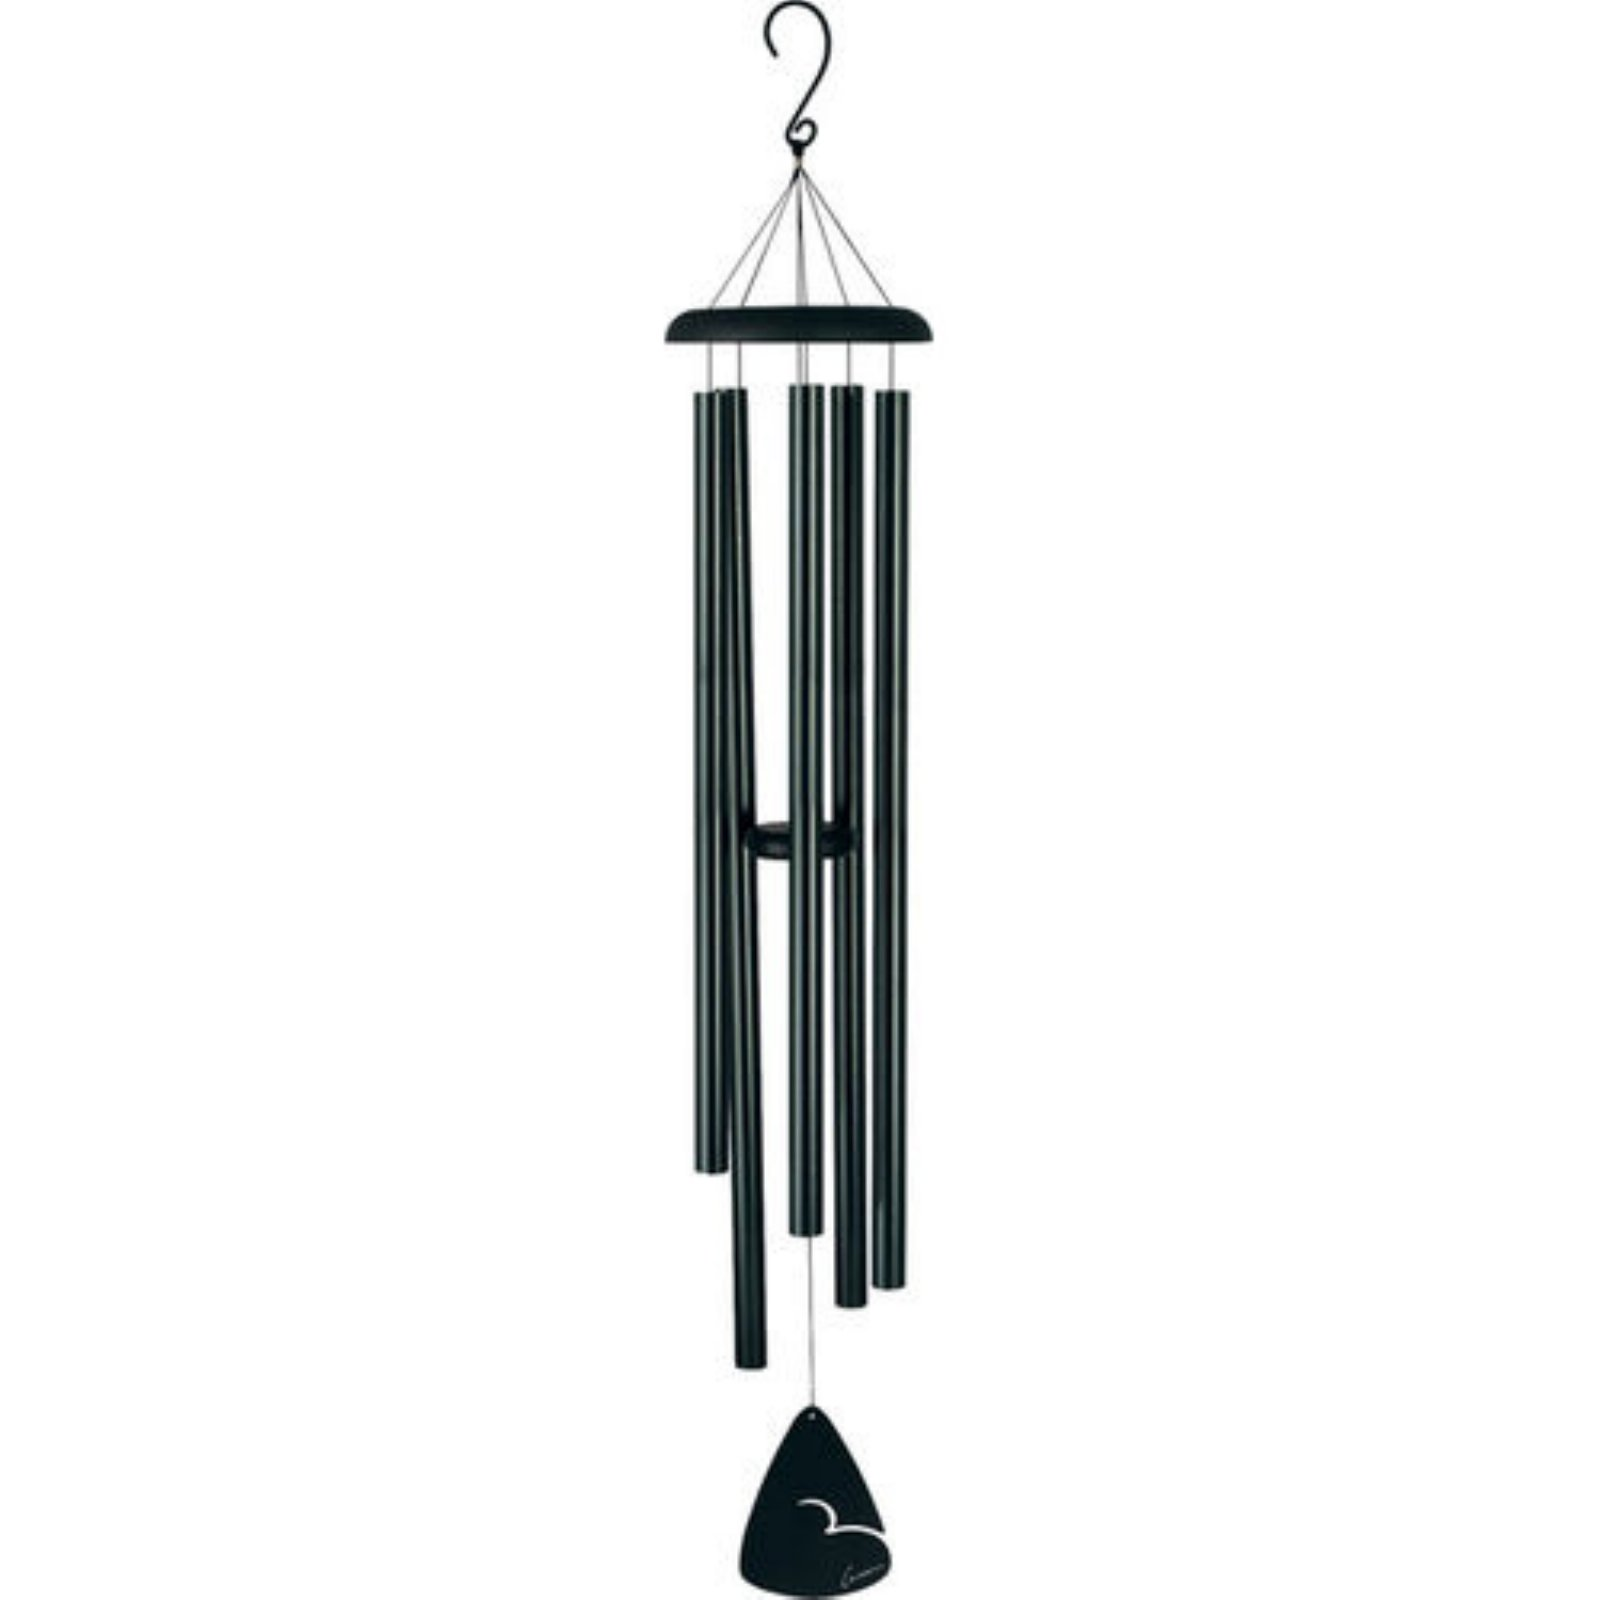 Carson 60 in. Signature Series Wind Chime-Forest Green by Marson